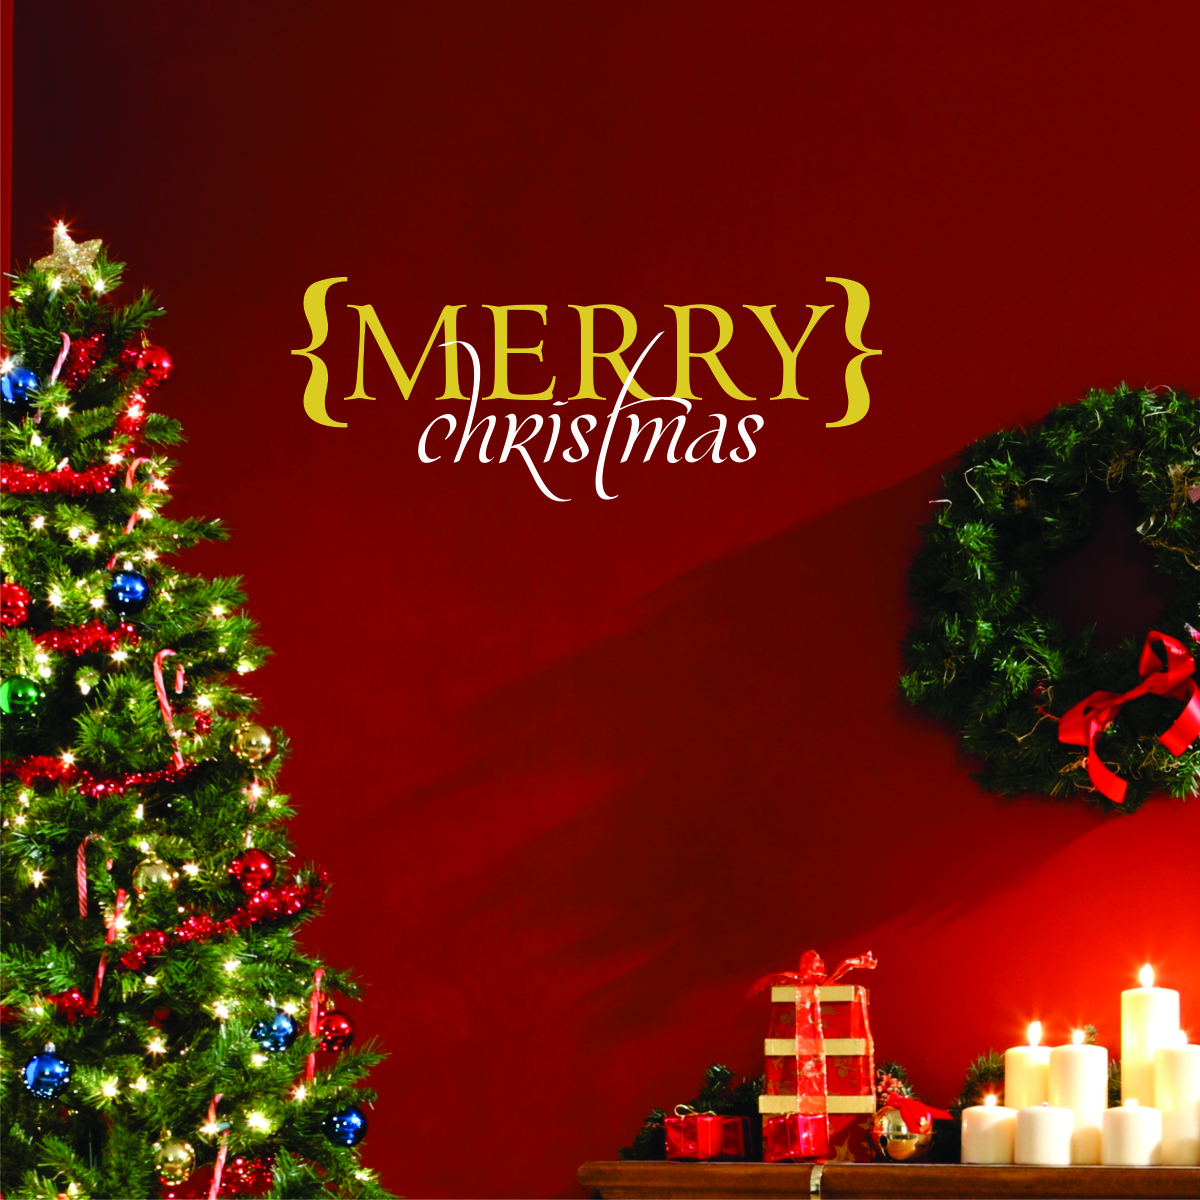 Christmas Tree Brackets: Merry Christmas Brackets Wall Quotes™ Decal